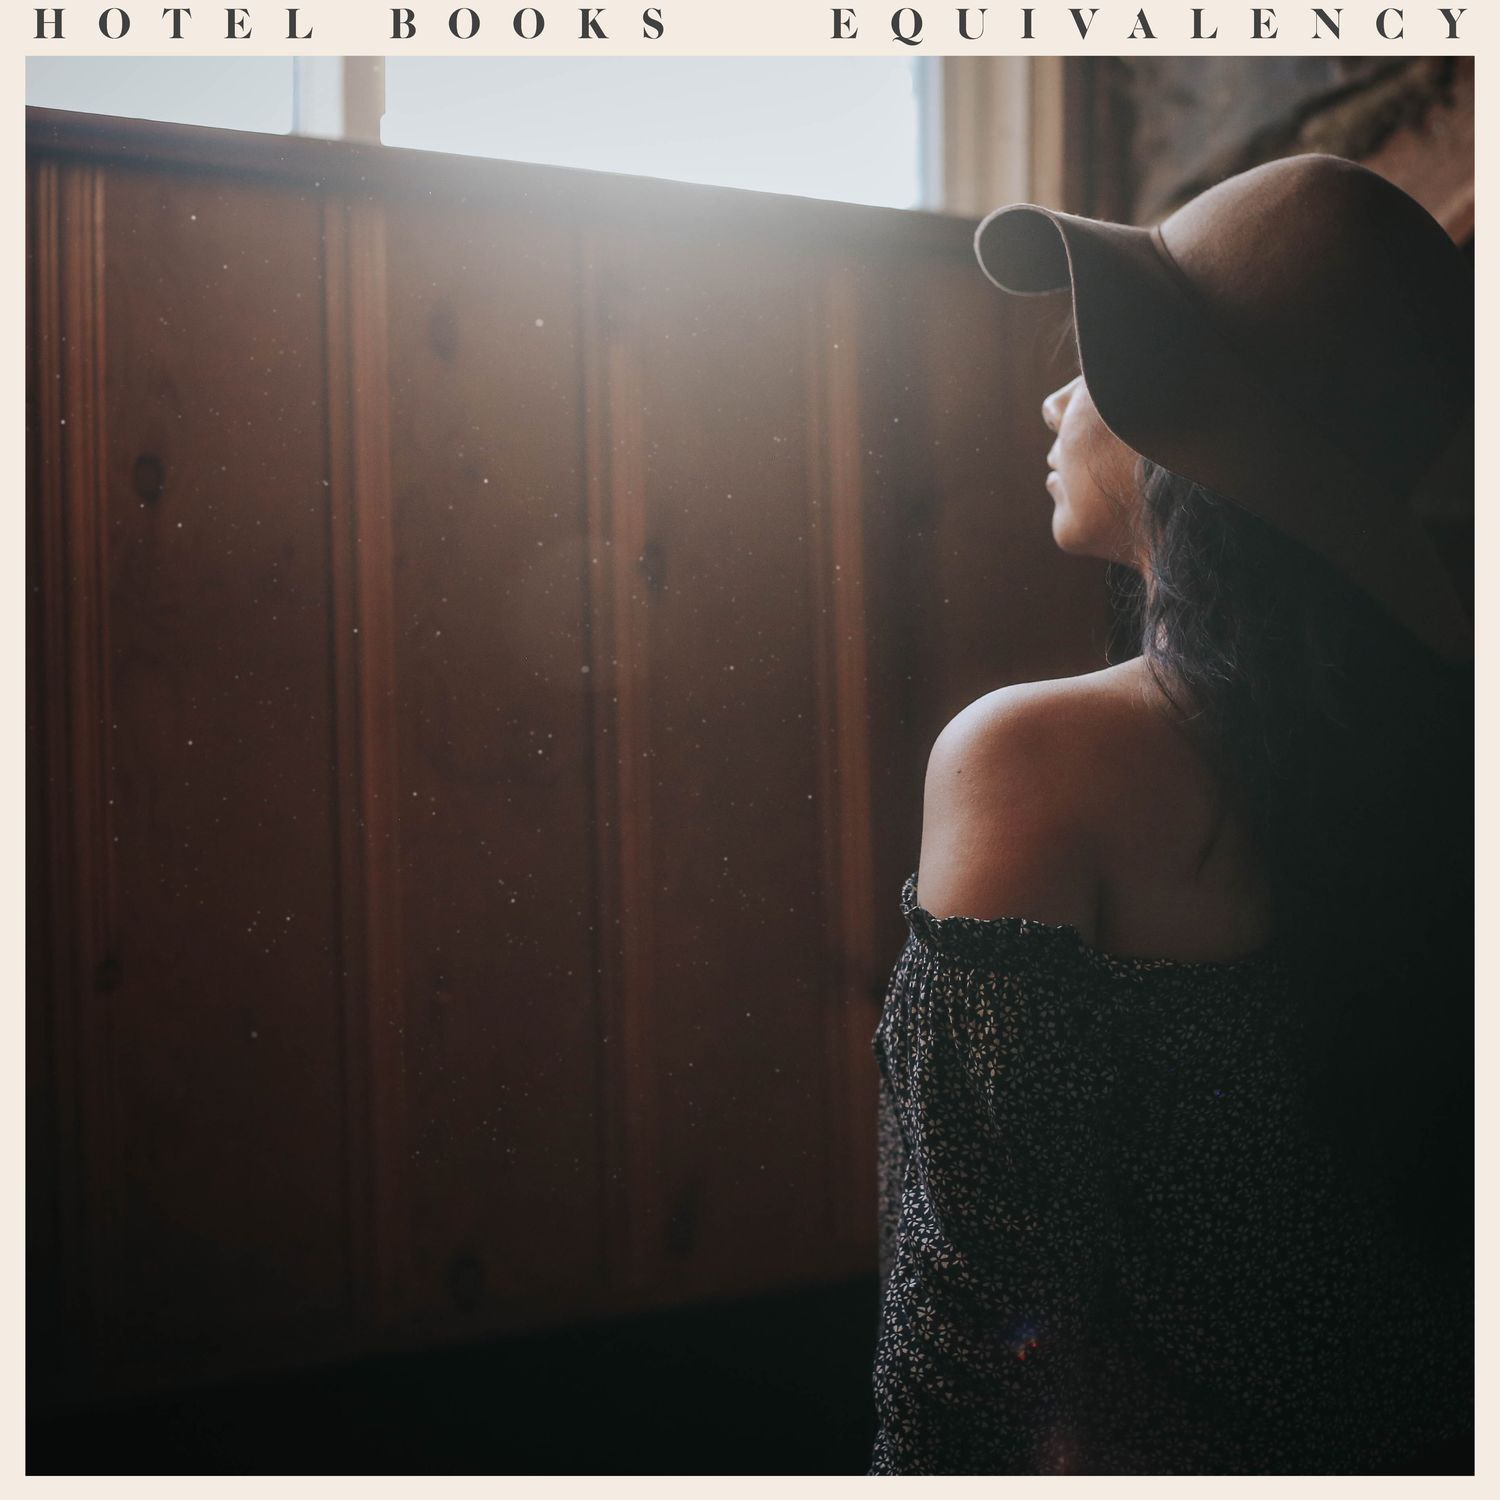 Hotel Books - Equivalency (2017)